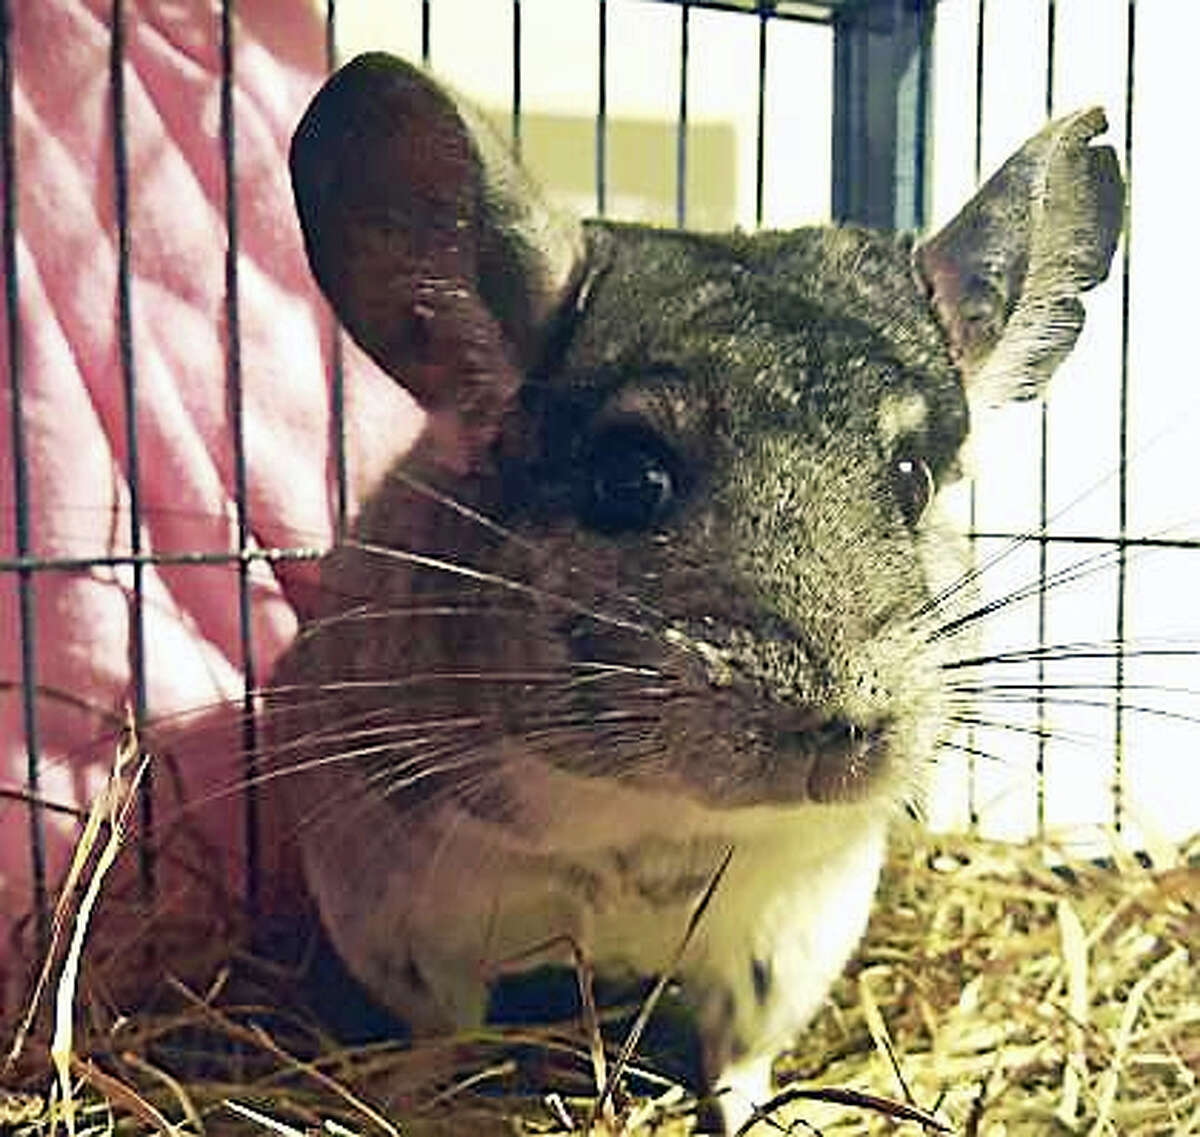 Hufflepuff is the perfect name for this small and furry creature! This is a Chinchilla and he is 4-years-old. Chinchillas can make wonderful pets for the right family. They are smart, inquisitive, and loving animals. They are active, vocal, and entertaining to watch. Since they can live up to 20 years they can be long time companions. These adorable creatures are social animals and need a lot of interaction. Two chinchillas may be better than one, as they can play and interact and not be completely dependent on their owner. They are also a bit fragile, and are not recommended for young children. Come and visit beautiful Hufflepuff today!Remember, the Connecticut Humane Society has no time limits for adoption.Inquiries for adoption should be made at the Connecticut Humane Society located at 701 Russell Road in Newington or by calling (860) 594-4500 or toll free at 1-800-452-0114.The Connecticut Humane Society is a private organization with branch shelters in Waterford and Westport. The Connecticut Humane Society is not affiliated with any other animal welfare organizations on the national, regional or local level.